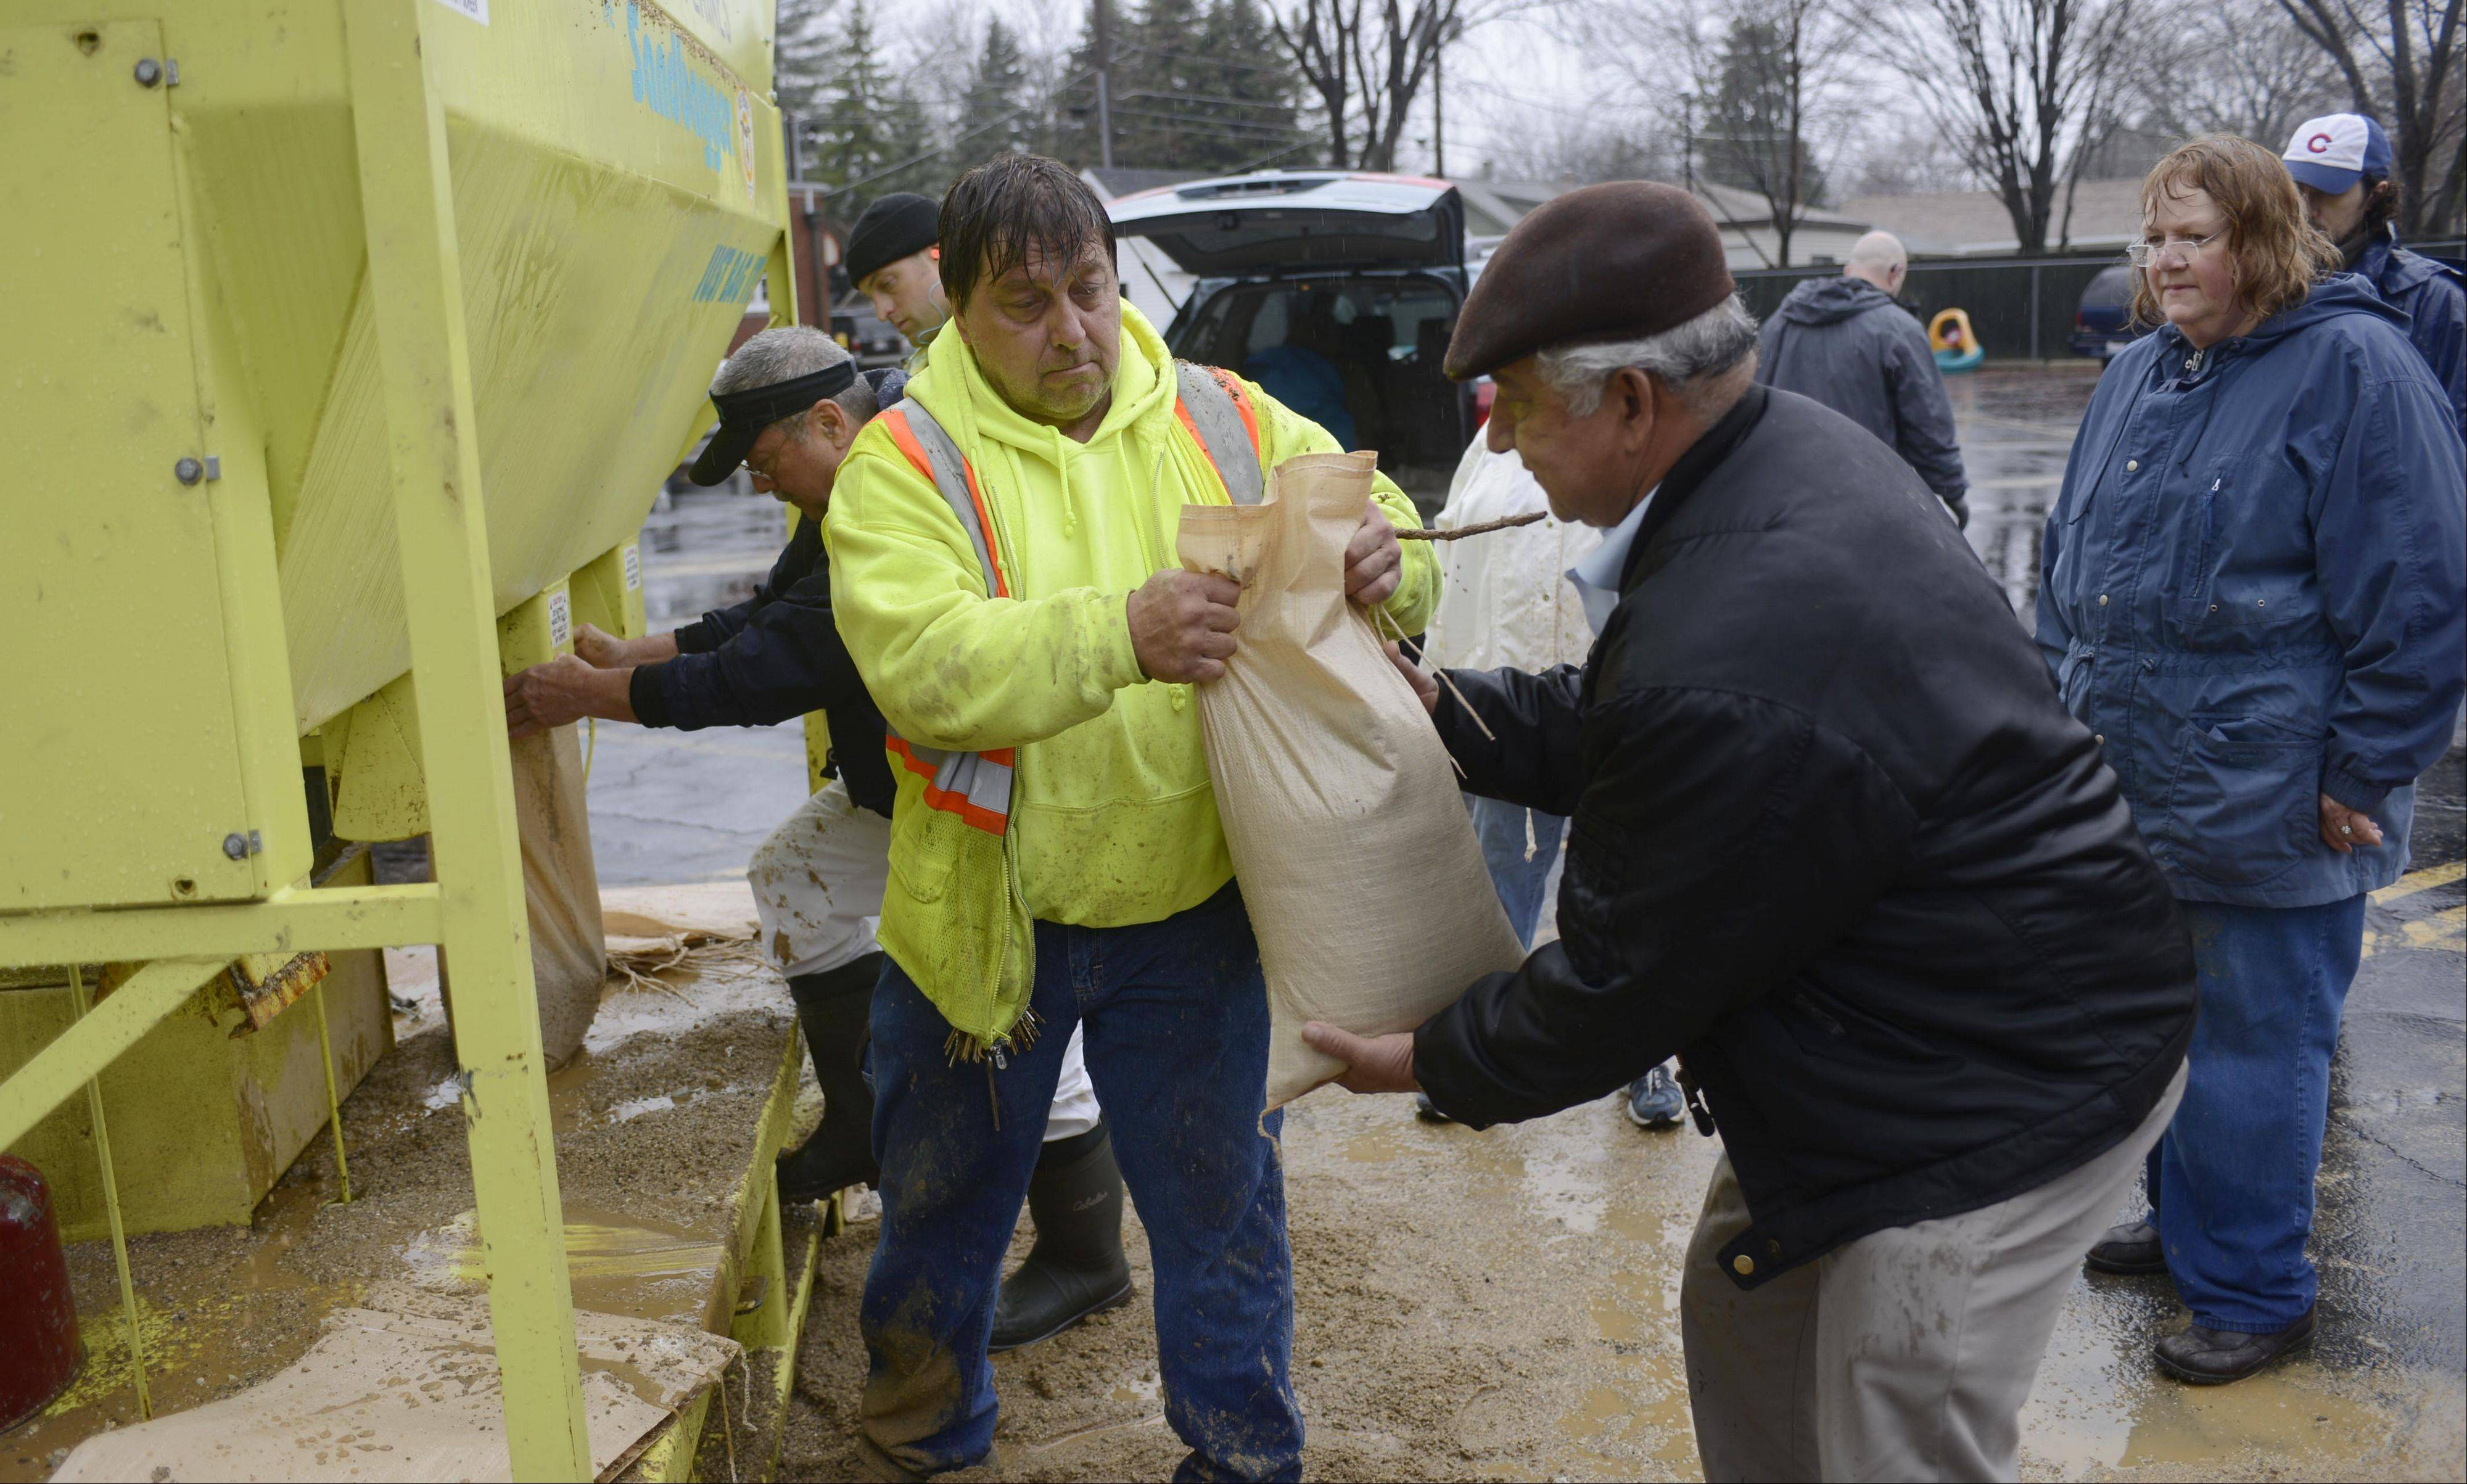 Ray Ritthamel, left, of the Des Plaines Public Works hands a sandbag to resident Sal Castellanos in the parking lot of Christ Church as floodwaters rise in Des Plaines Thursday.